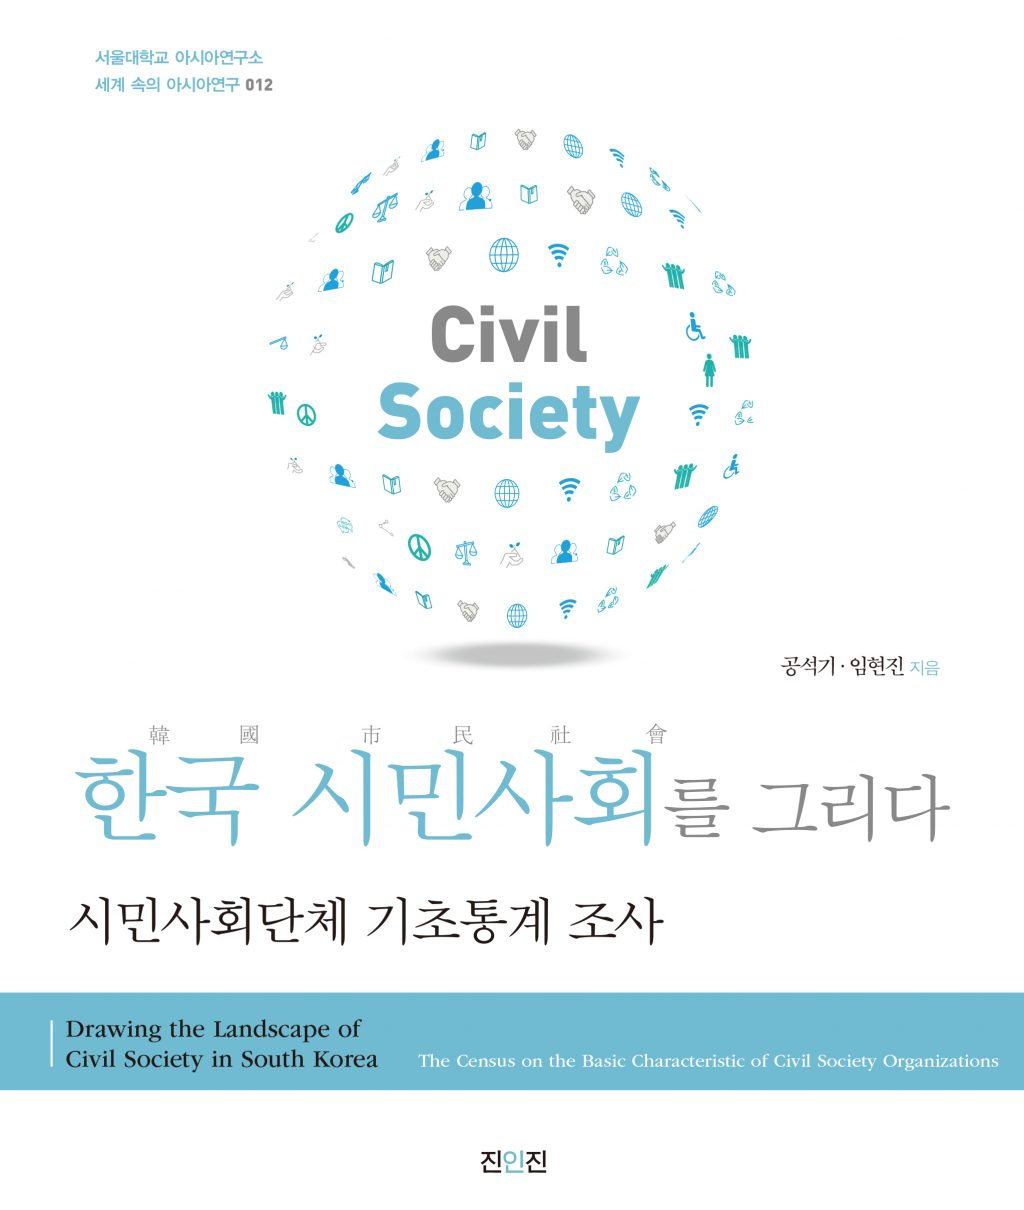 Drawing the Landscape of Civil Society in South Korea